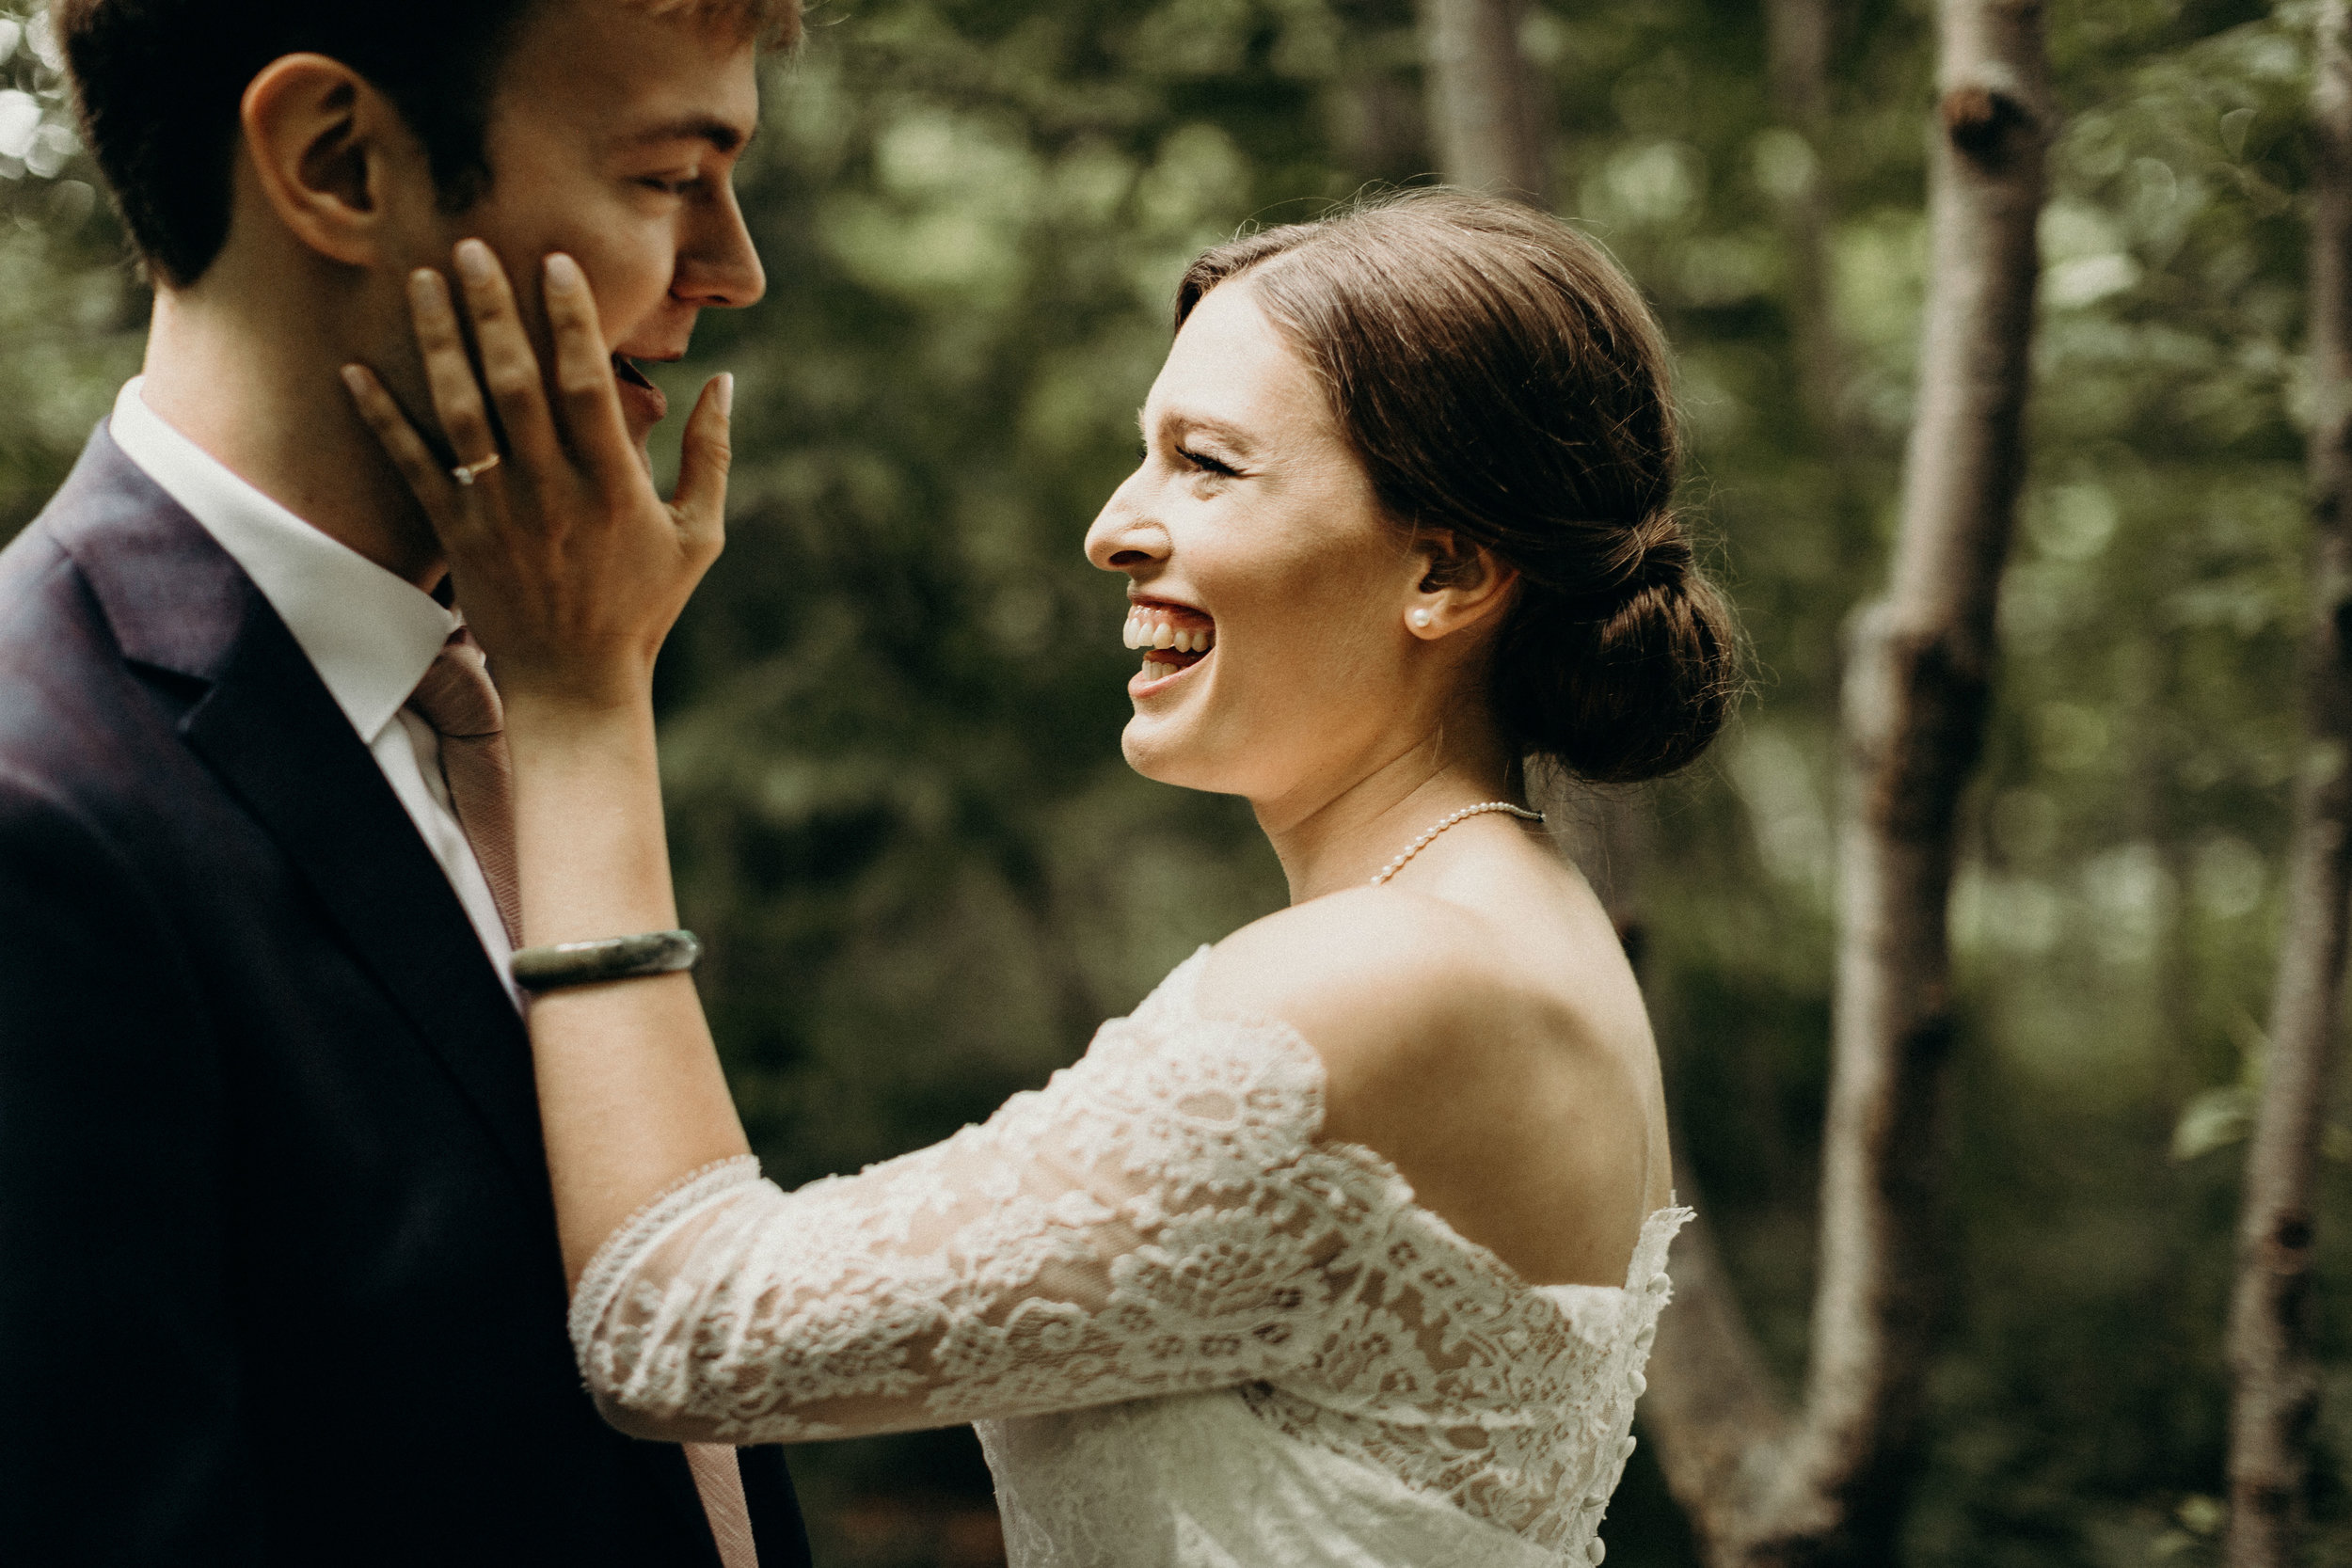 Bride and groom smiling during The First Look